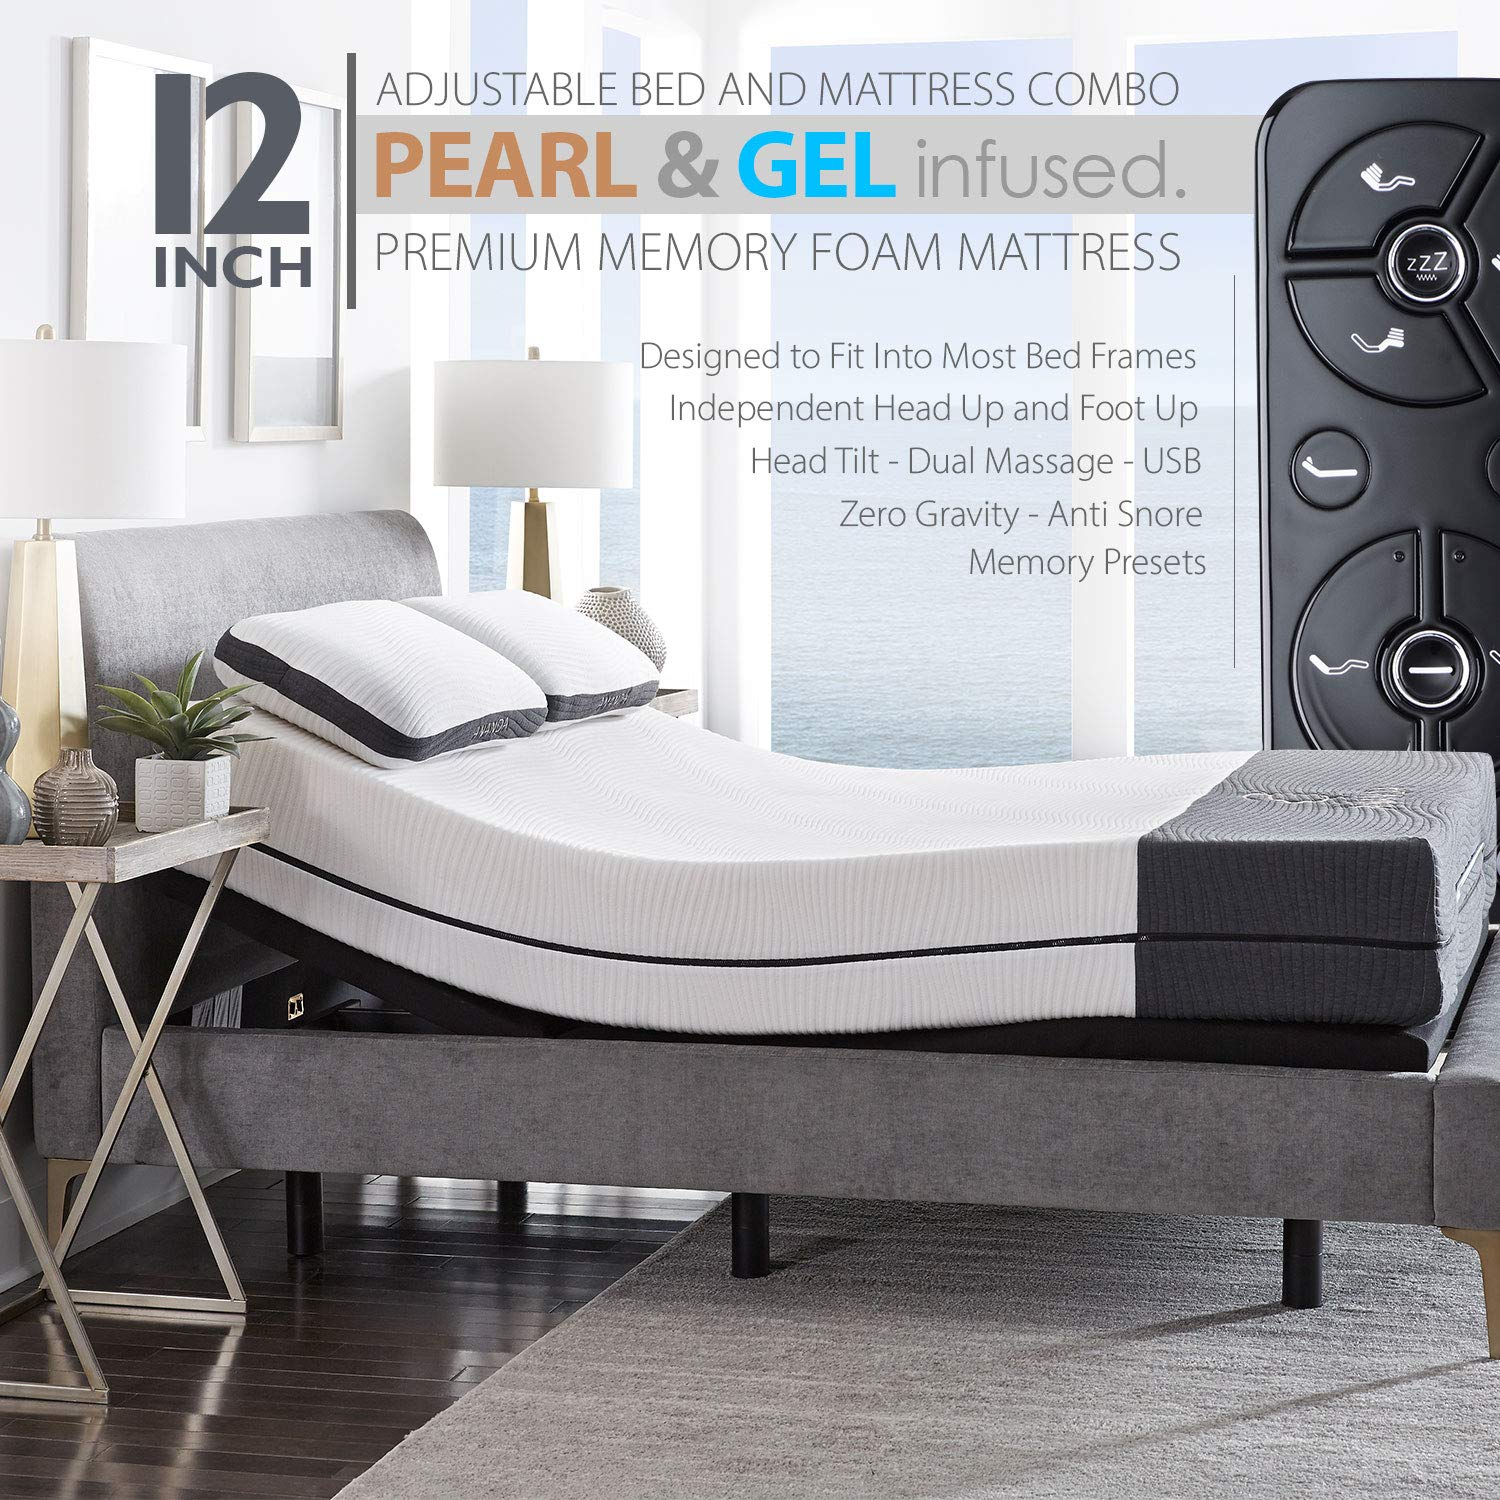 Blissful Nights Ananda 12'' Pearl and Cool Gel Infused Memory Foam Mattress with Premium Adjustable Bed Frame Combo, Head Tilt, Massage, USB, Zero Gravity,Anti-Snore (Full)